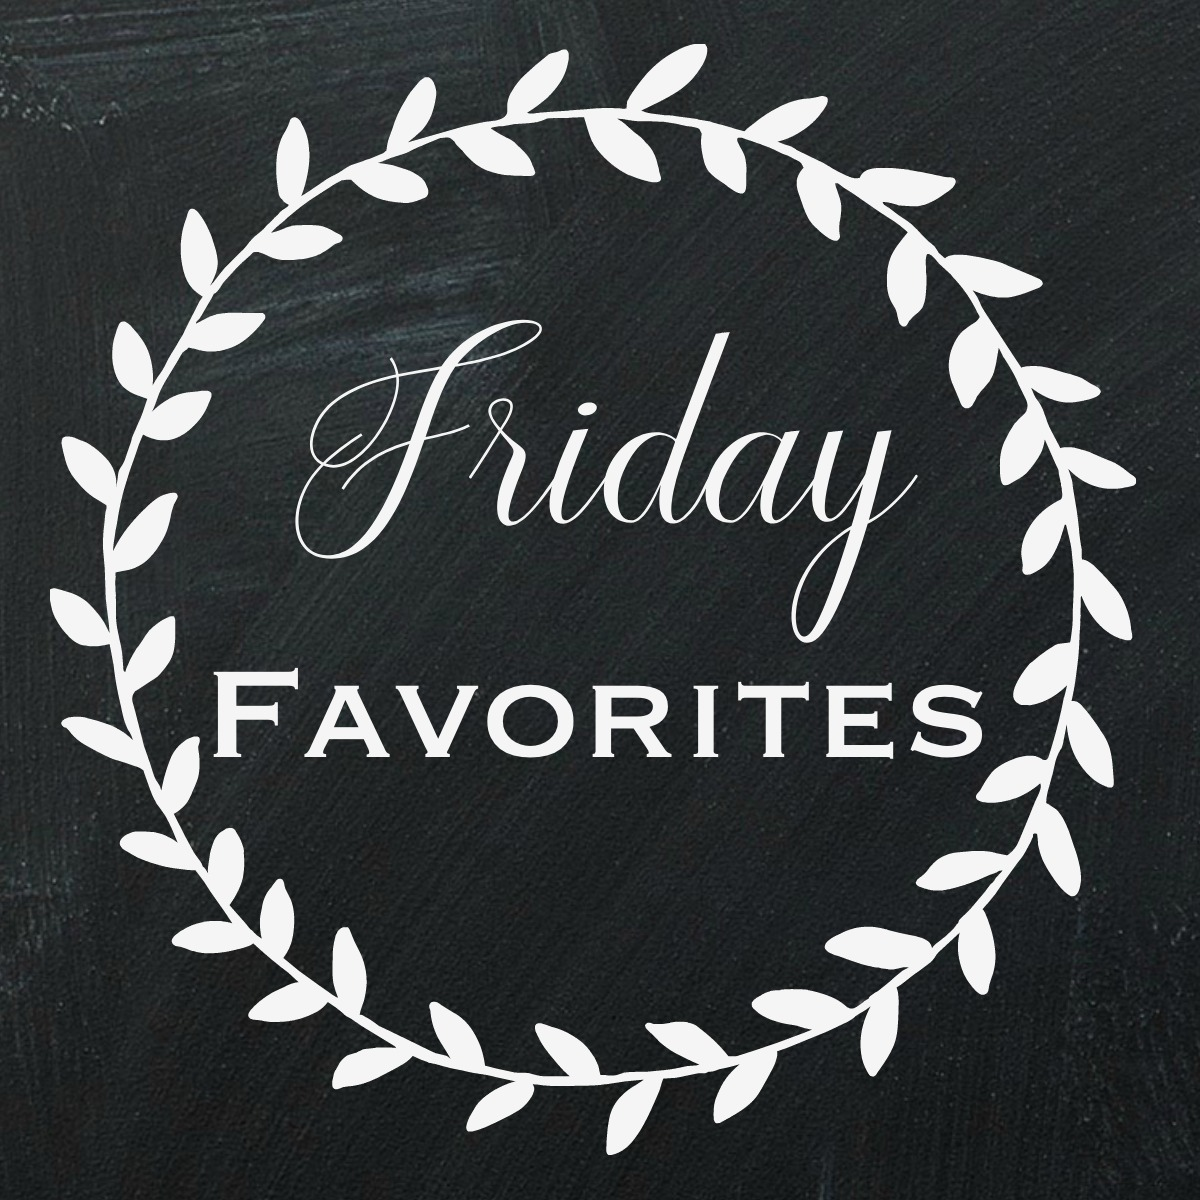 Friday Favorites #121